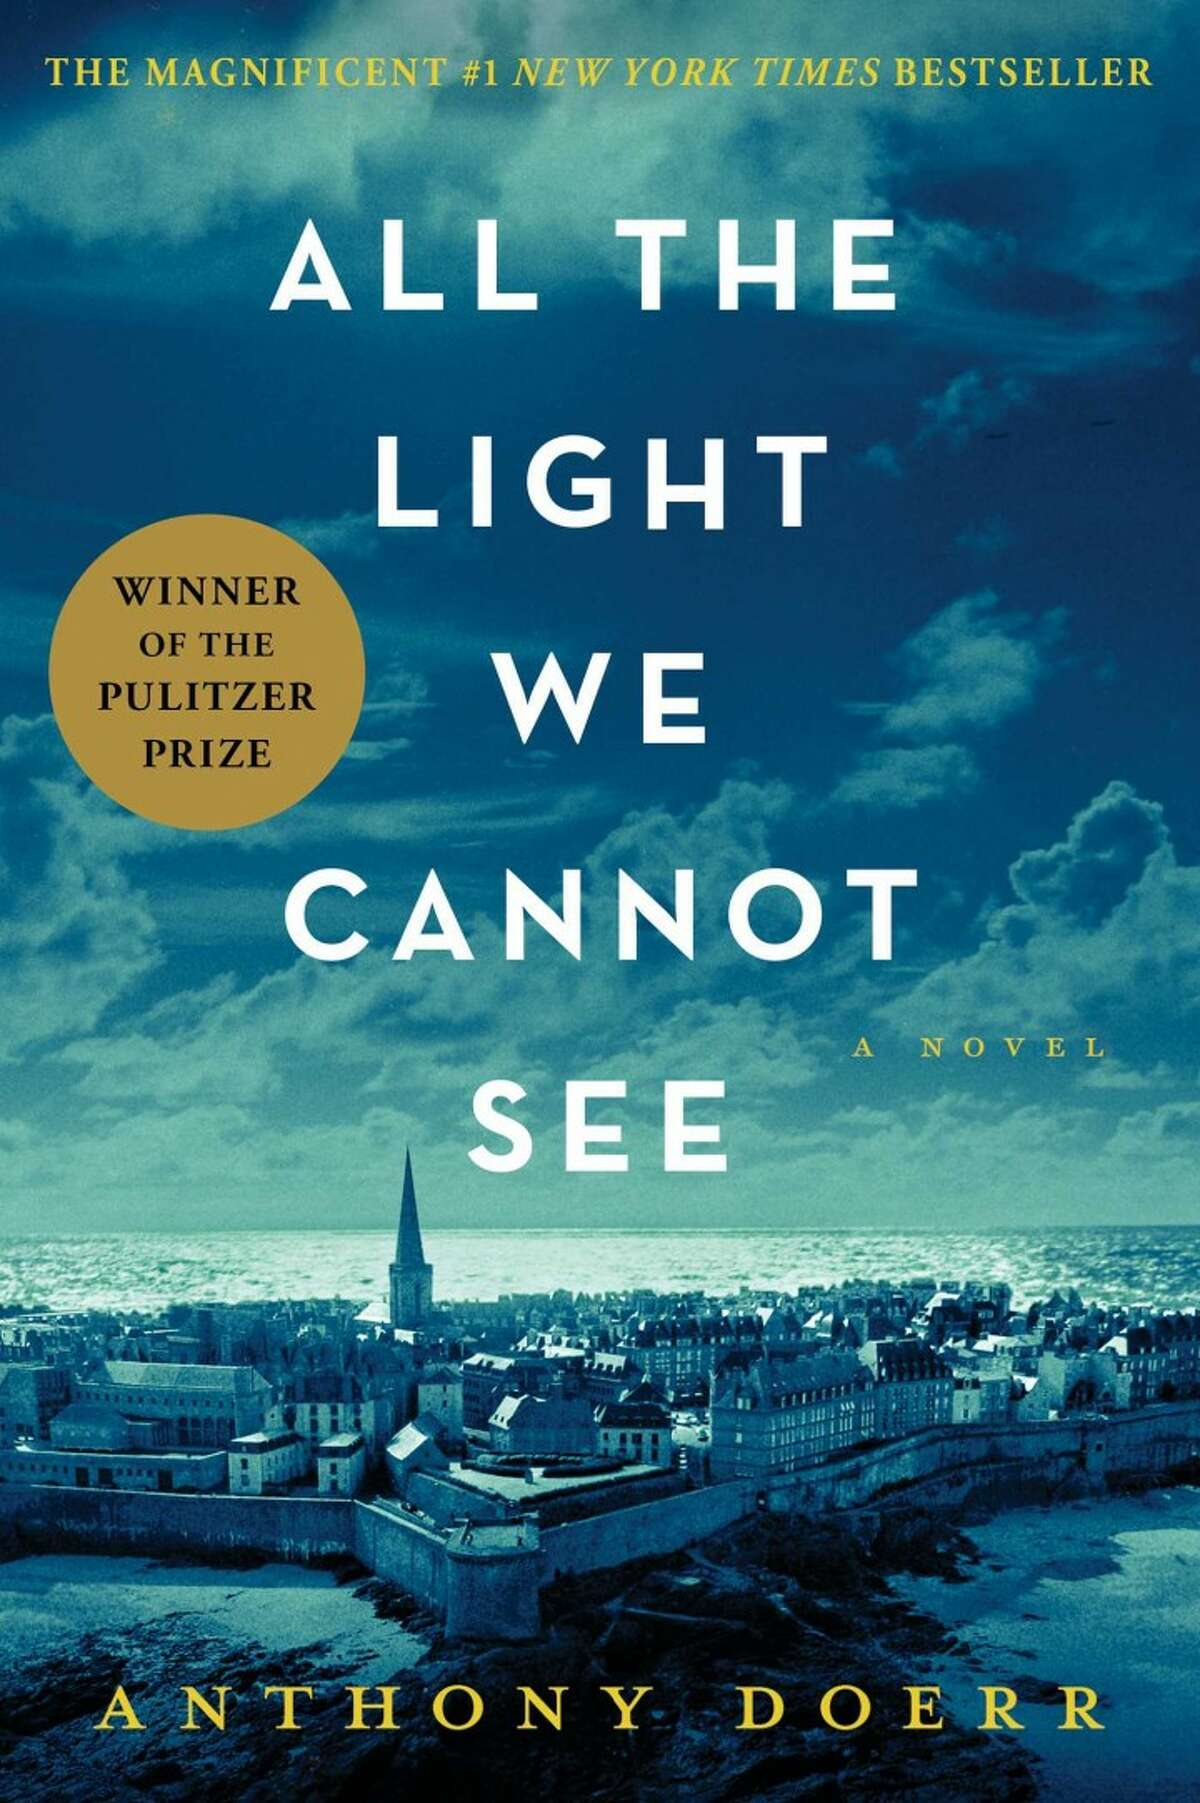 All the Light We Cannot See will be the book focused on next month during the library's One Book, One Town program.